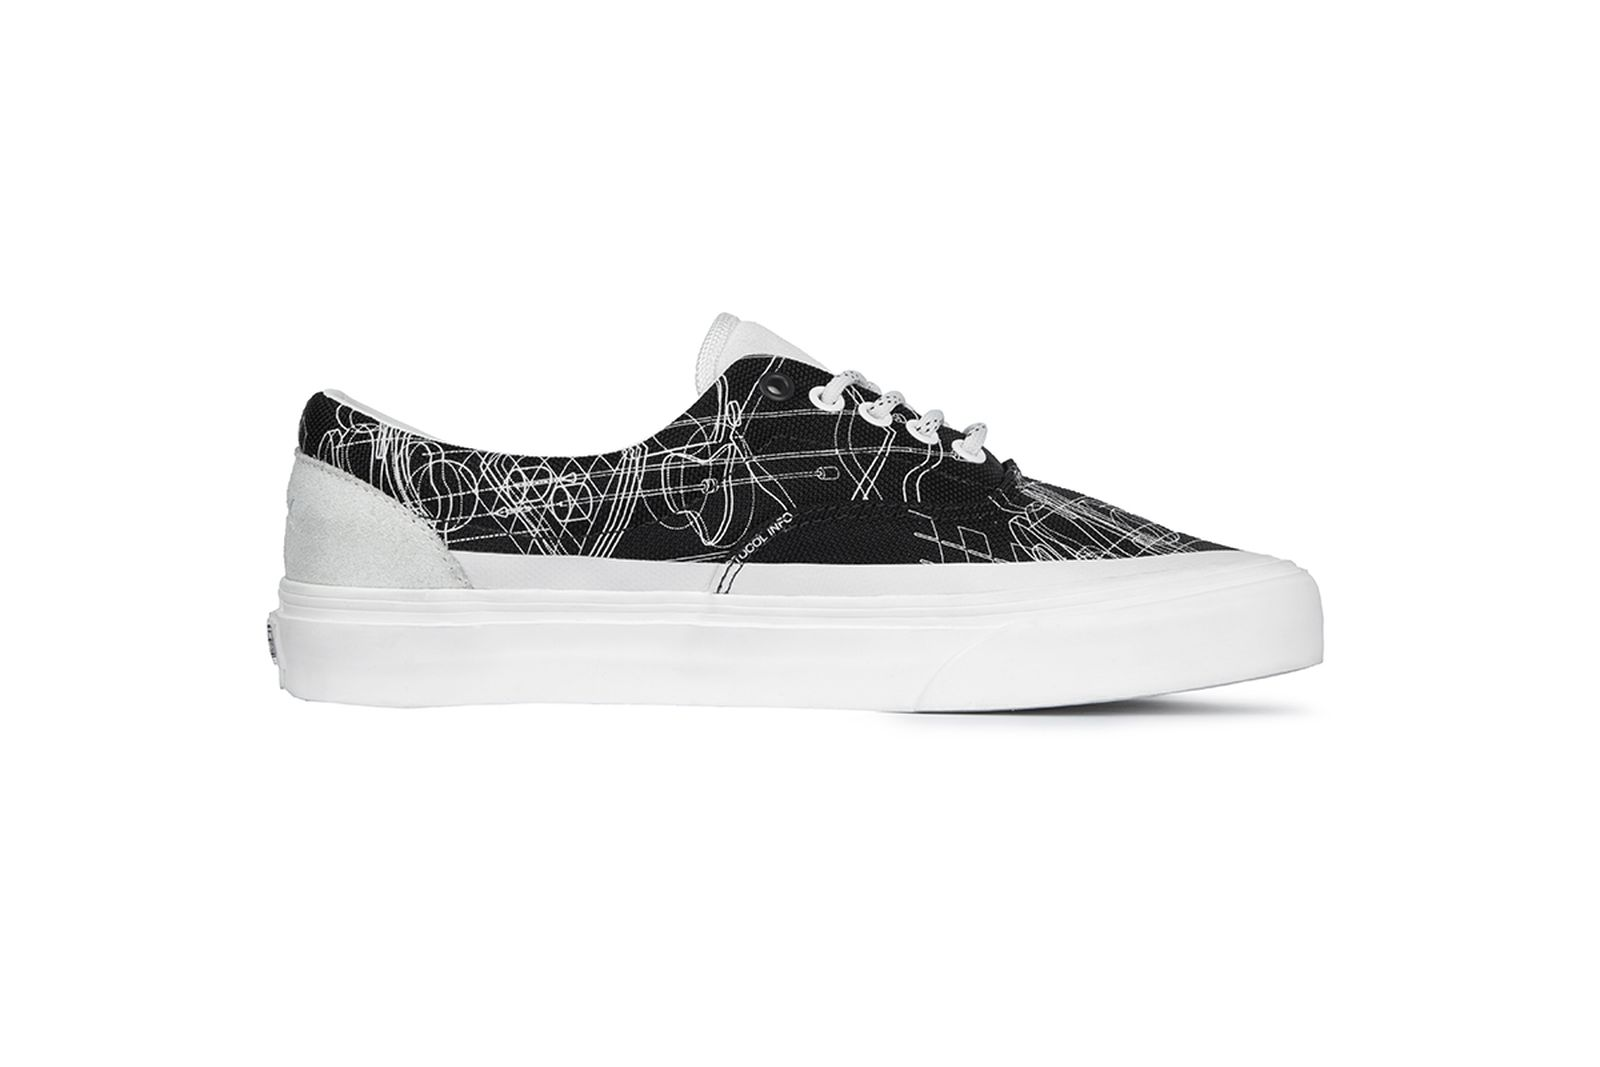 c2h4-vans-the-imagination-of-future-2-release-date-price-1-a-04